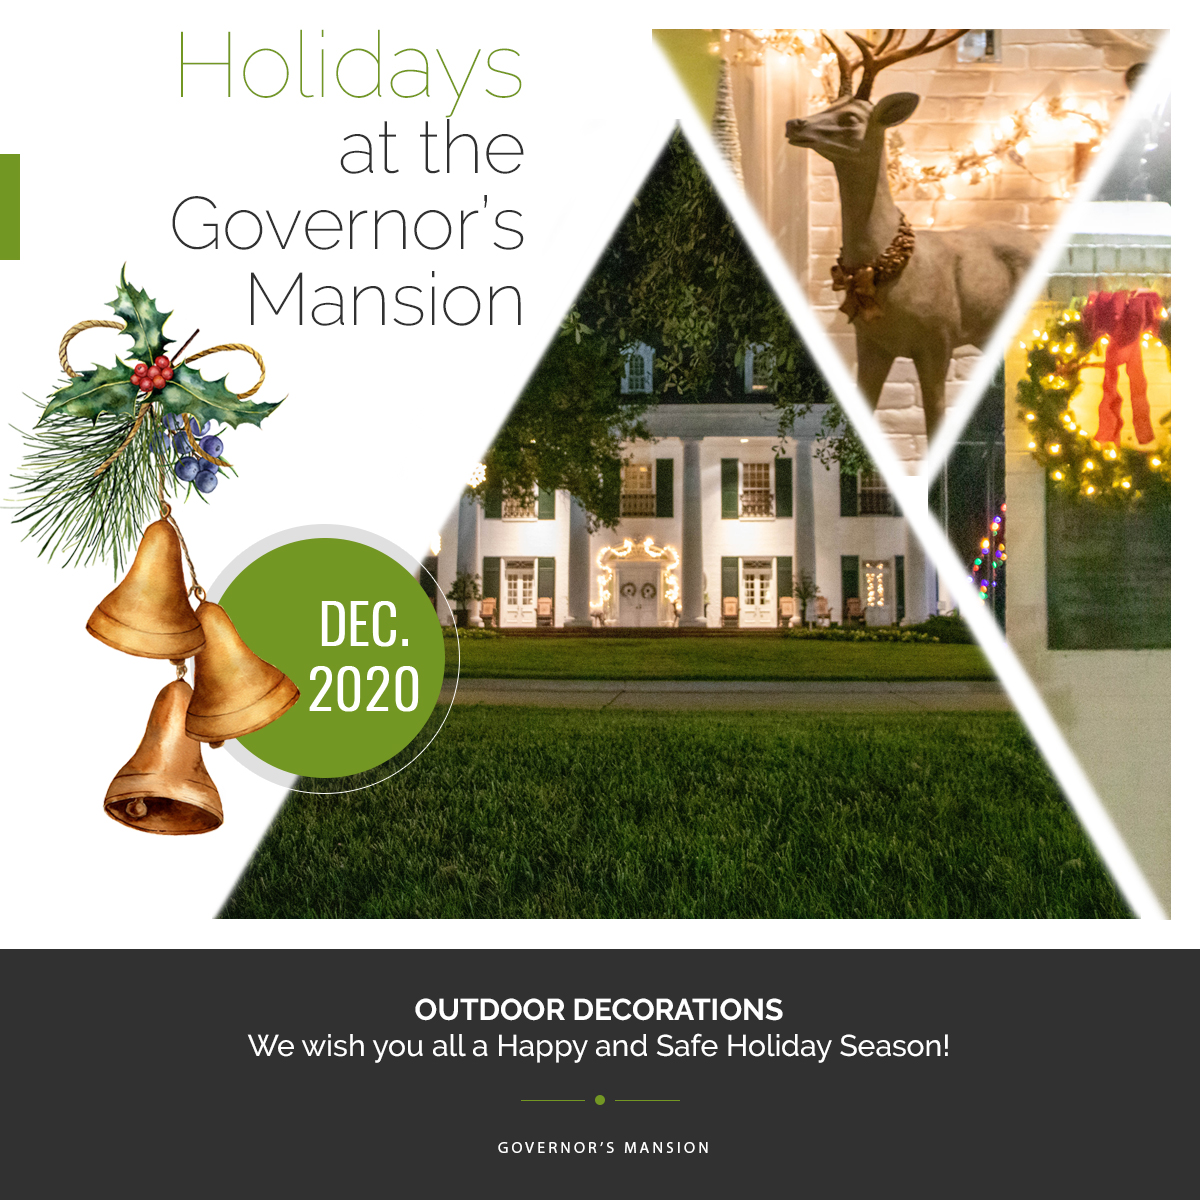 Holidays at the Governor's Mansion